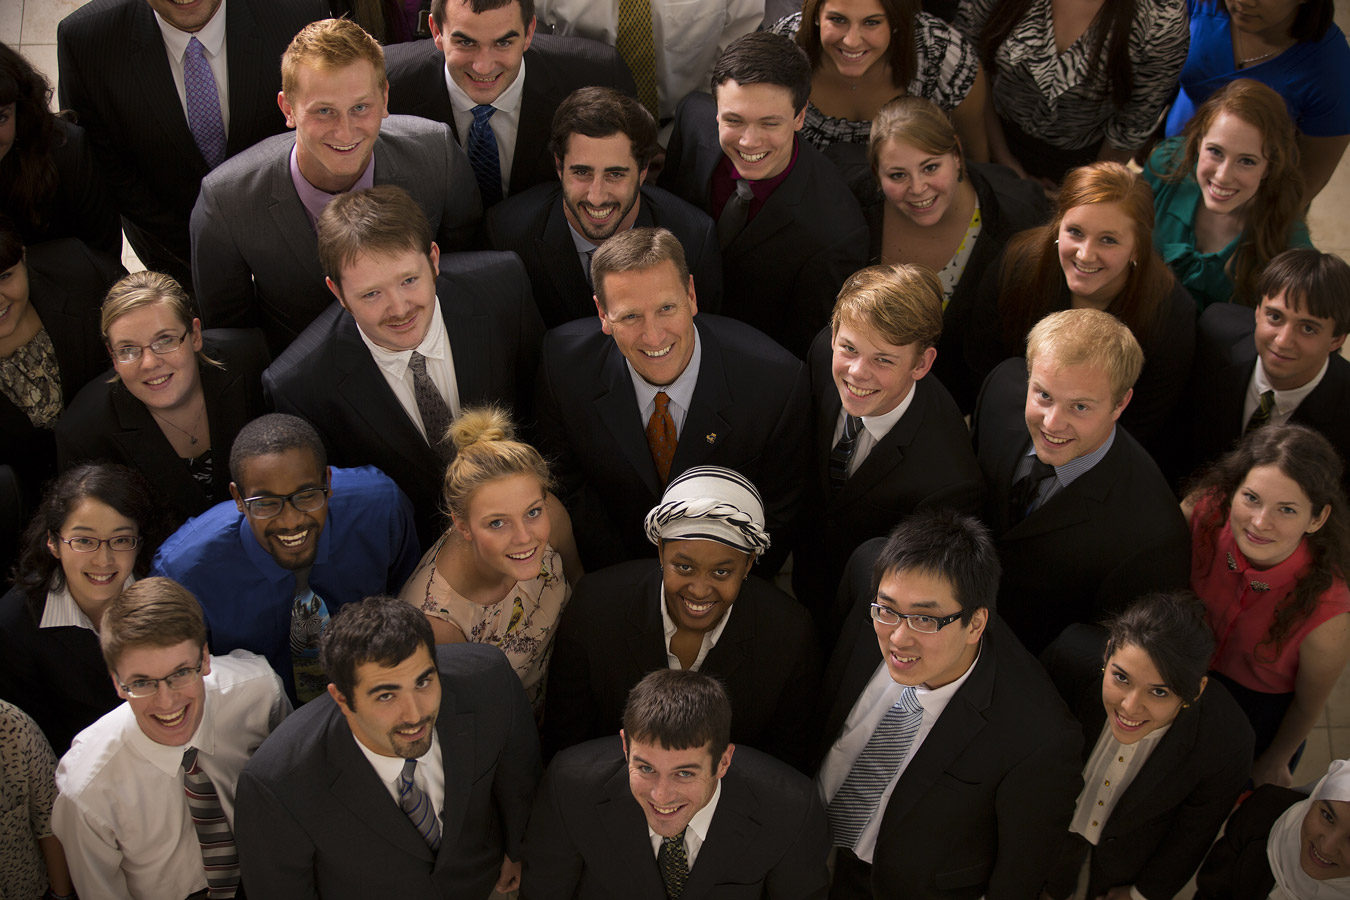 Juniata college faces of diversity